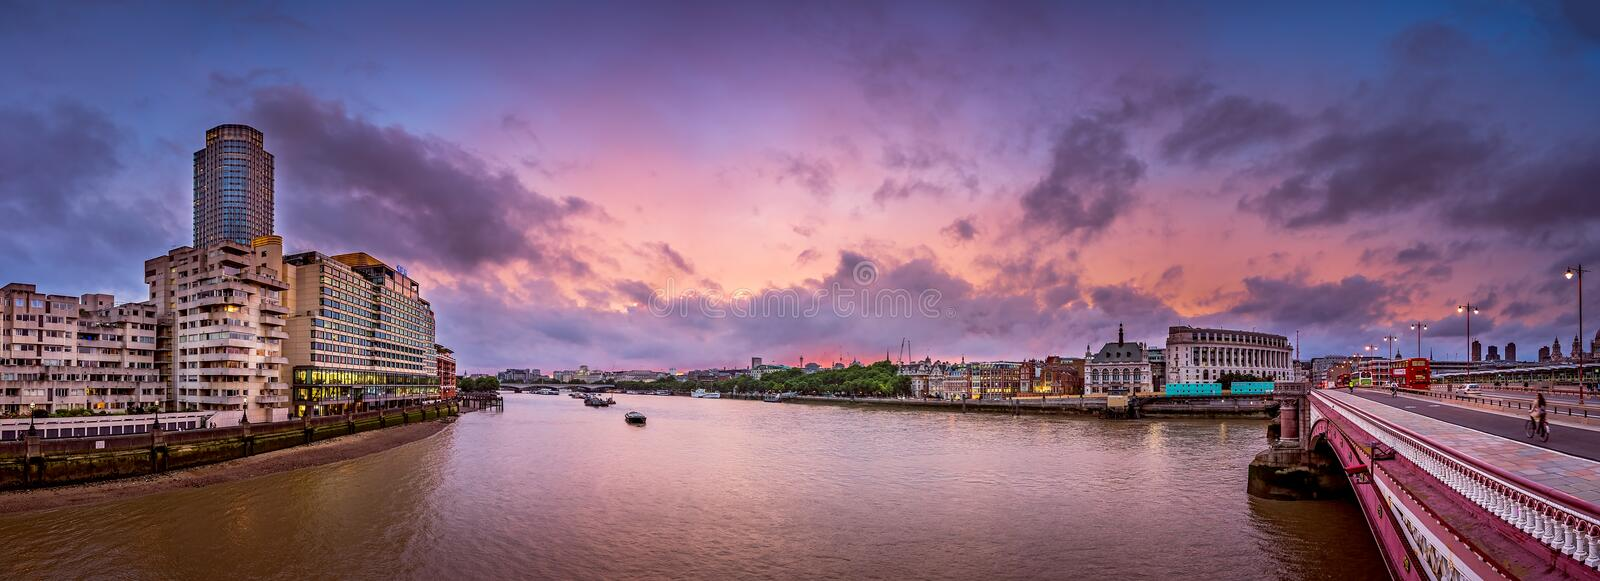 Thames panorama from Blackfriars Bridge stock photos